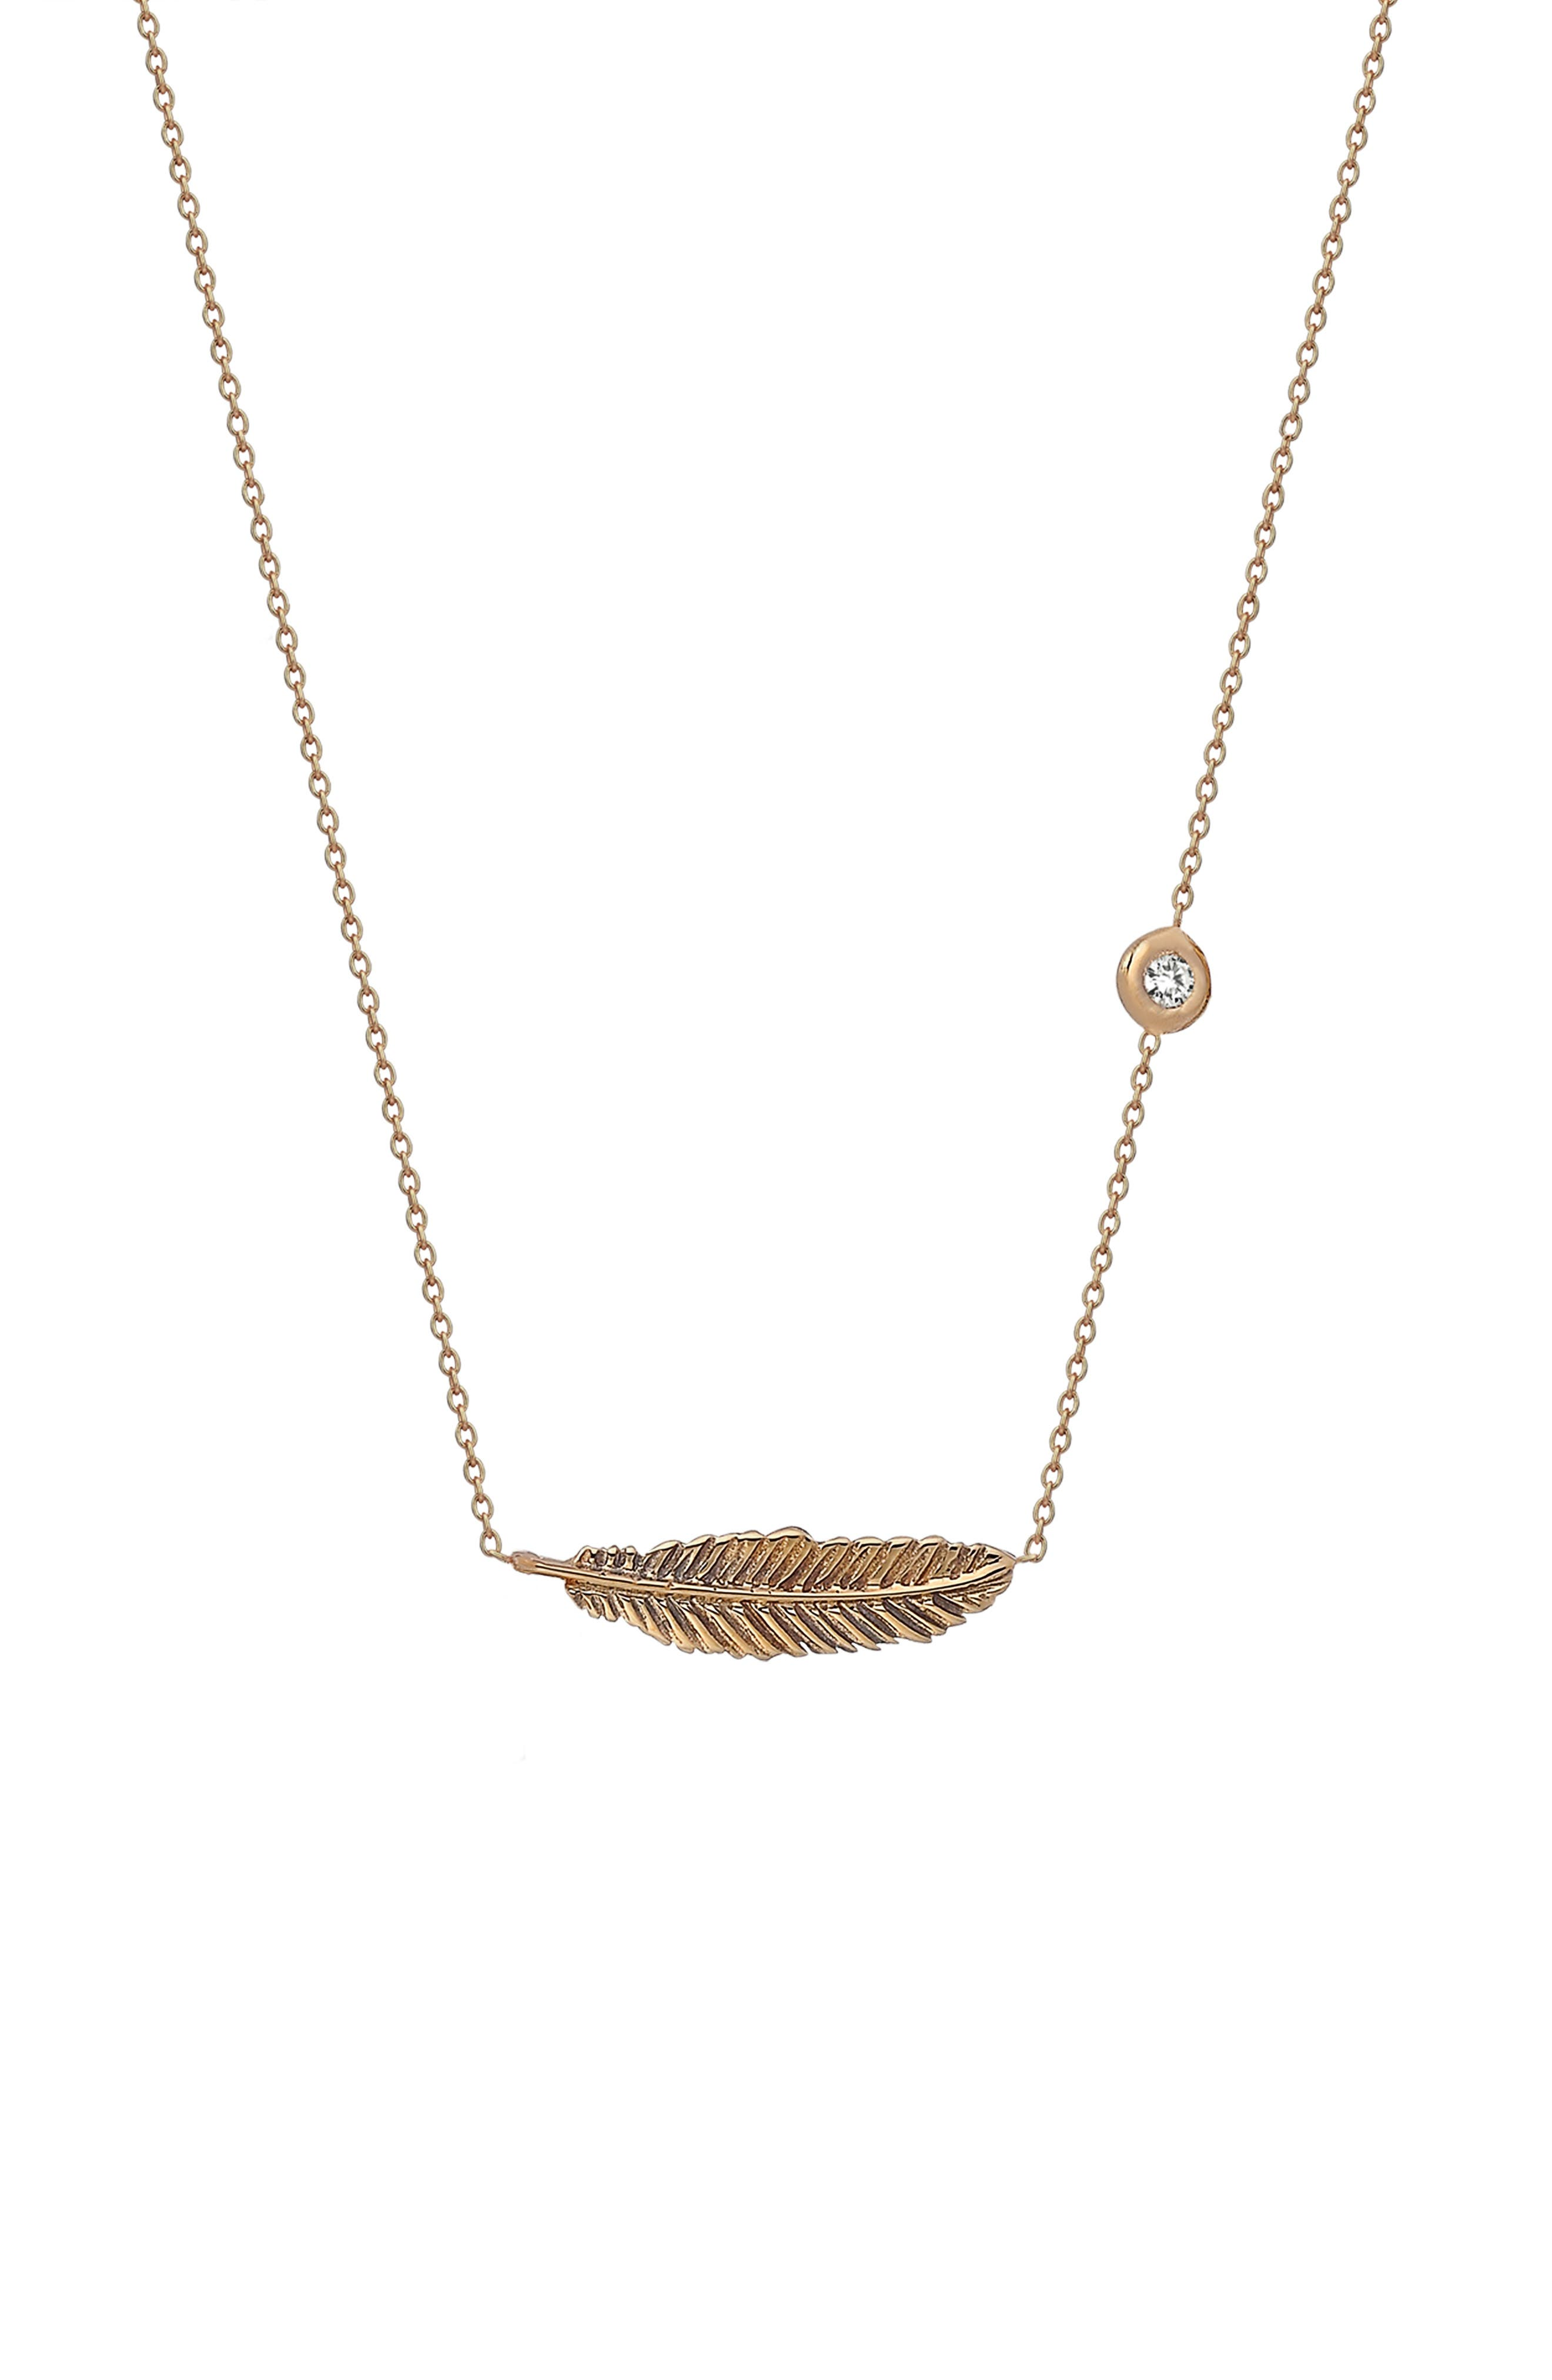 KISMET BY MILKA, Diamond & Feather Pendant Necklace, Main thumbnail 1, color, ROSE GOLD/ DIAMOND